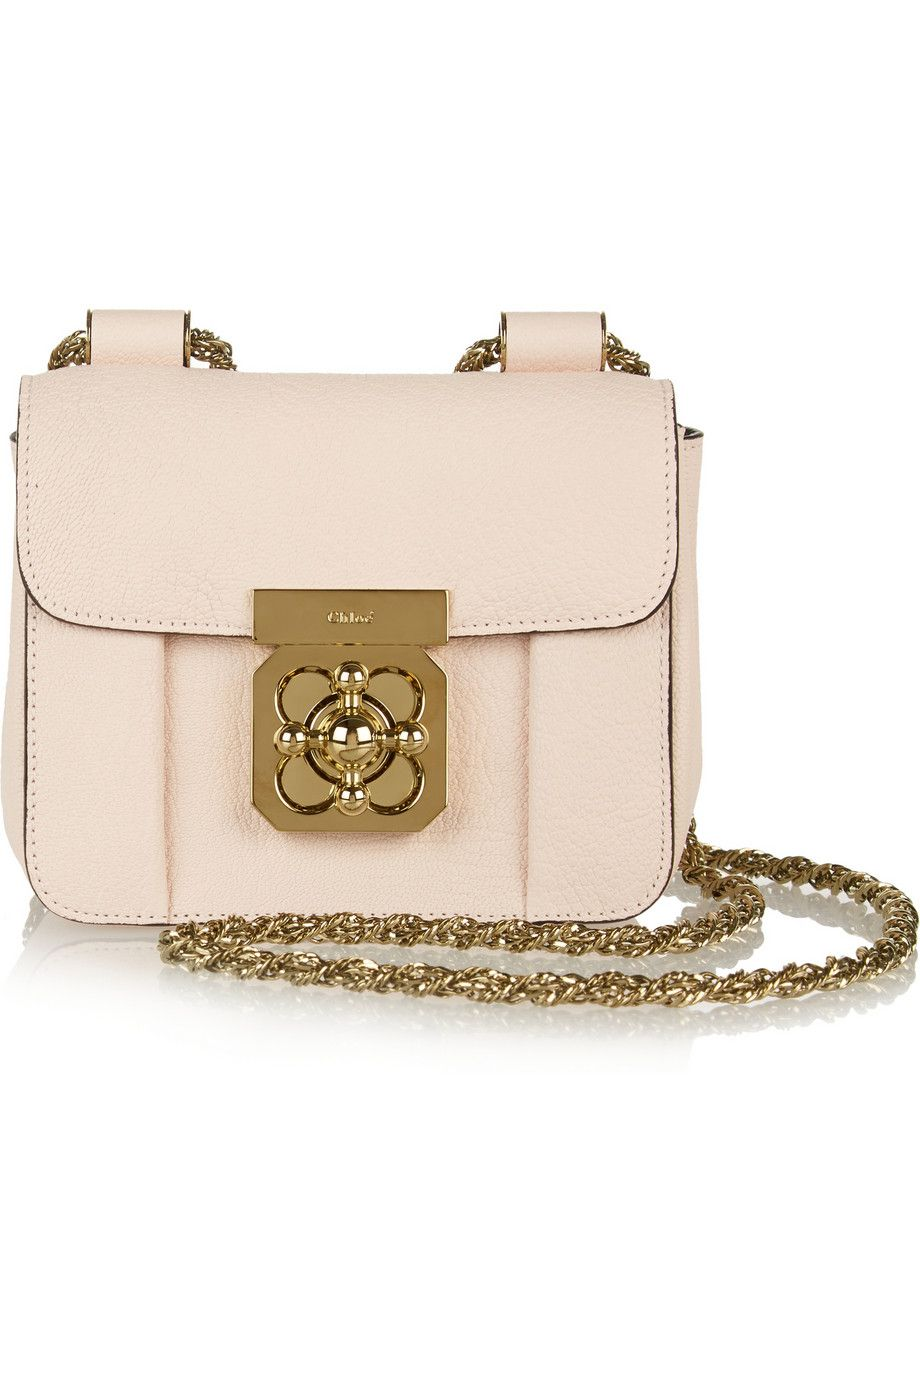 Chloé - Elsie mini textured-leather shoulder bag